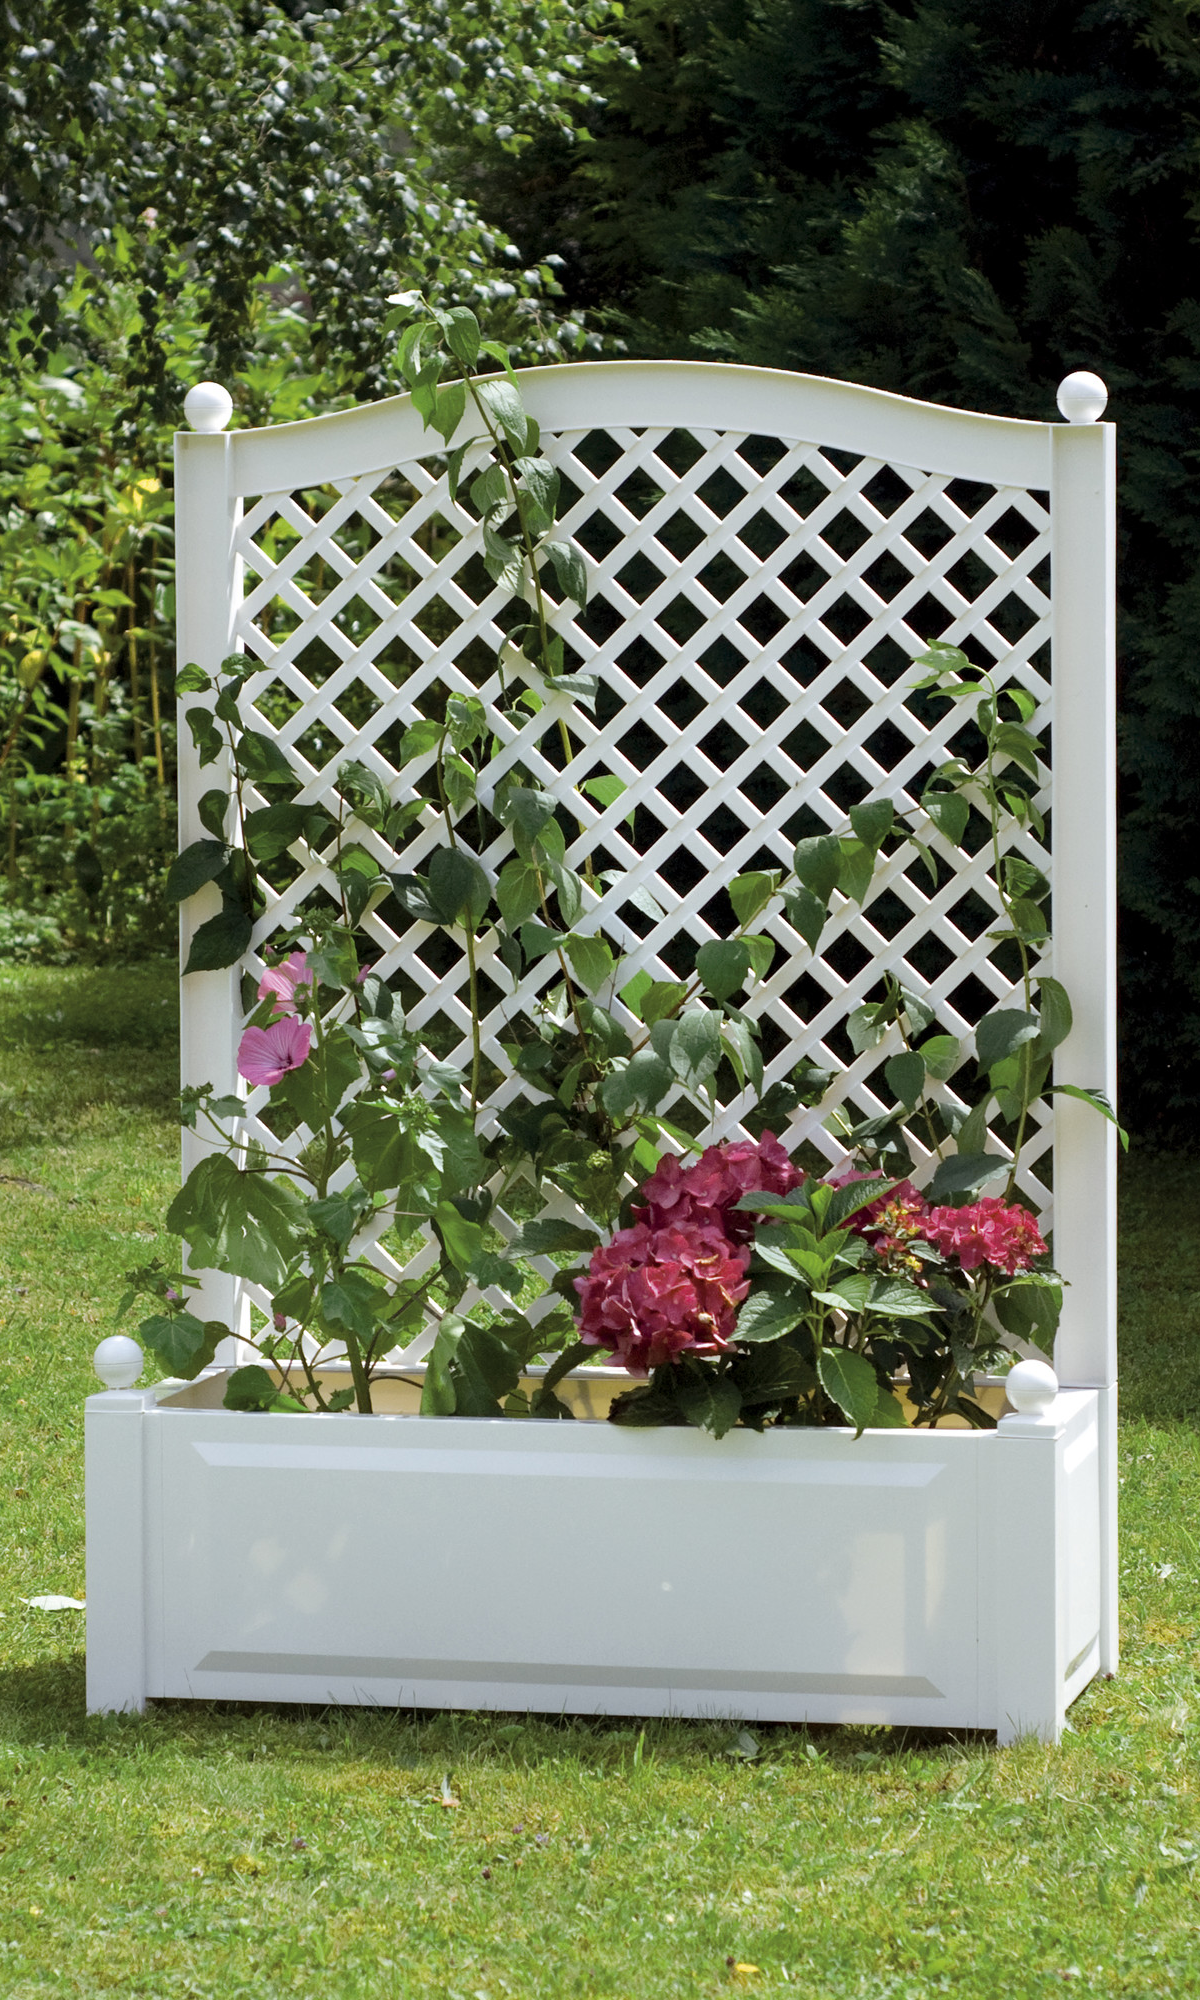 White Plastic Rectangular Planter Outdoor